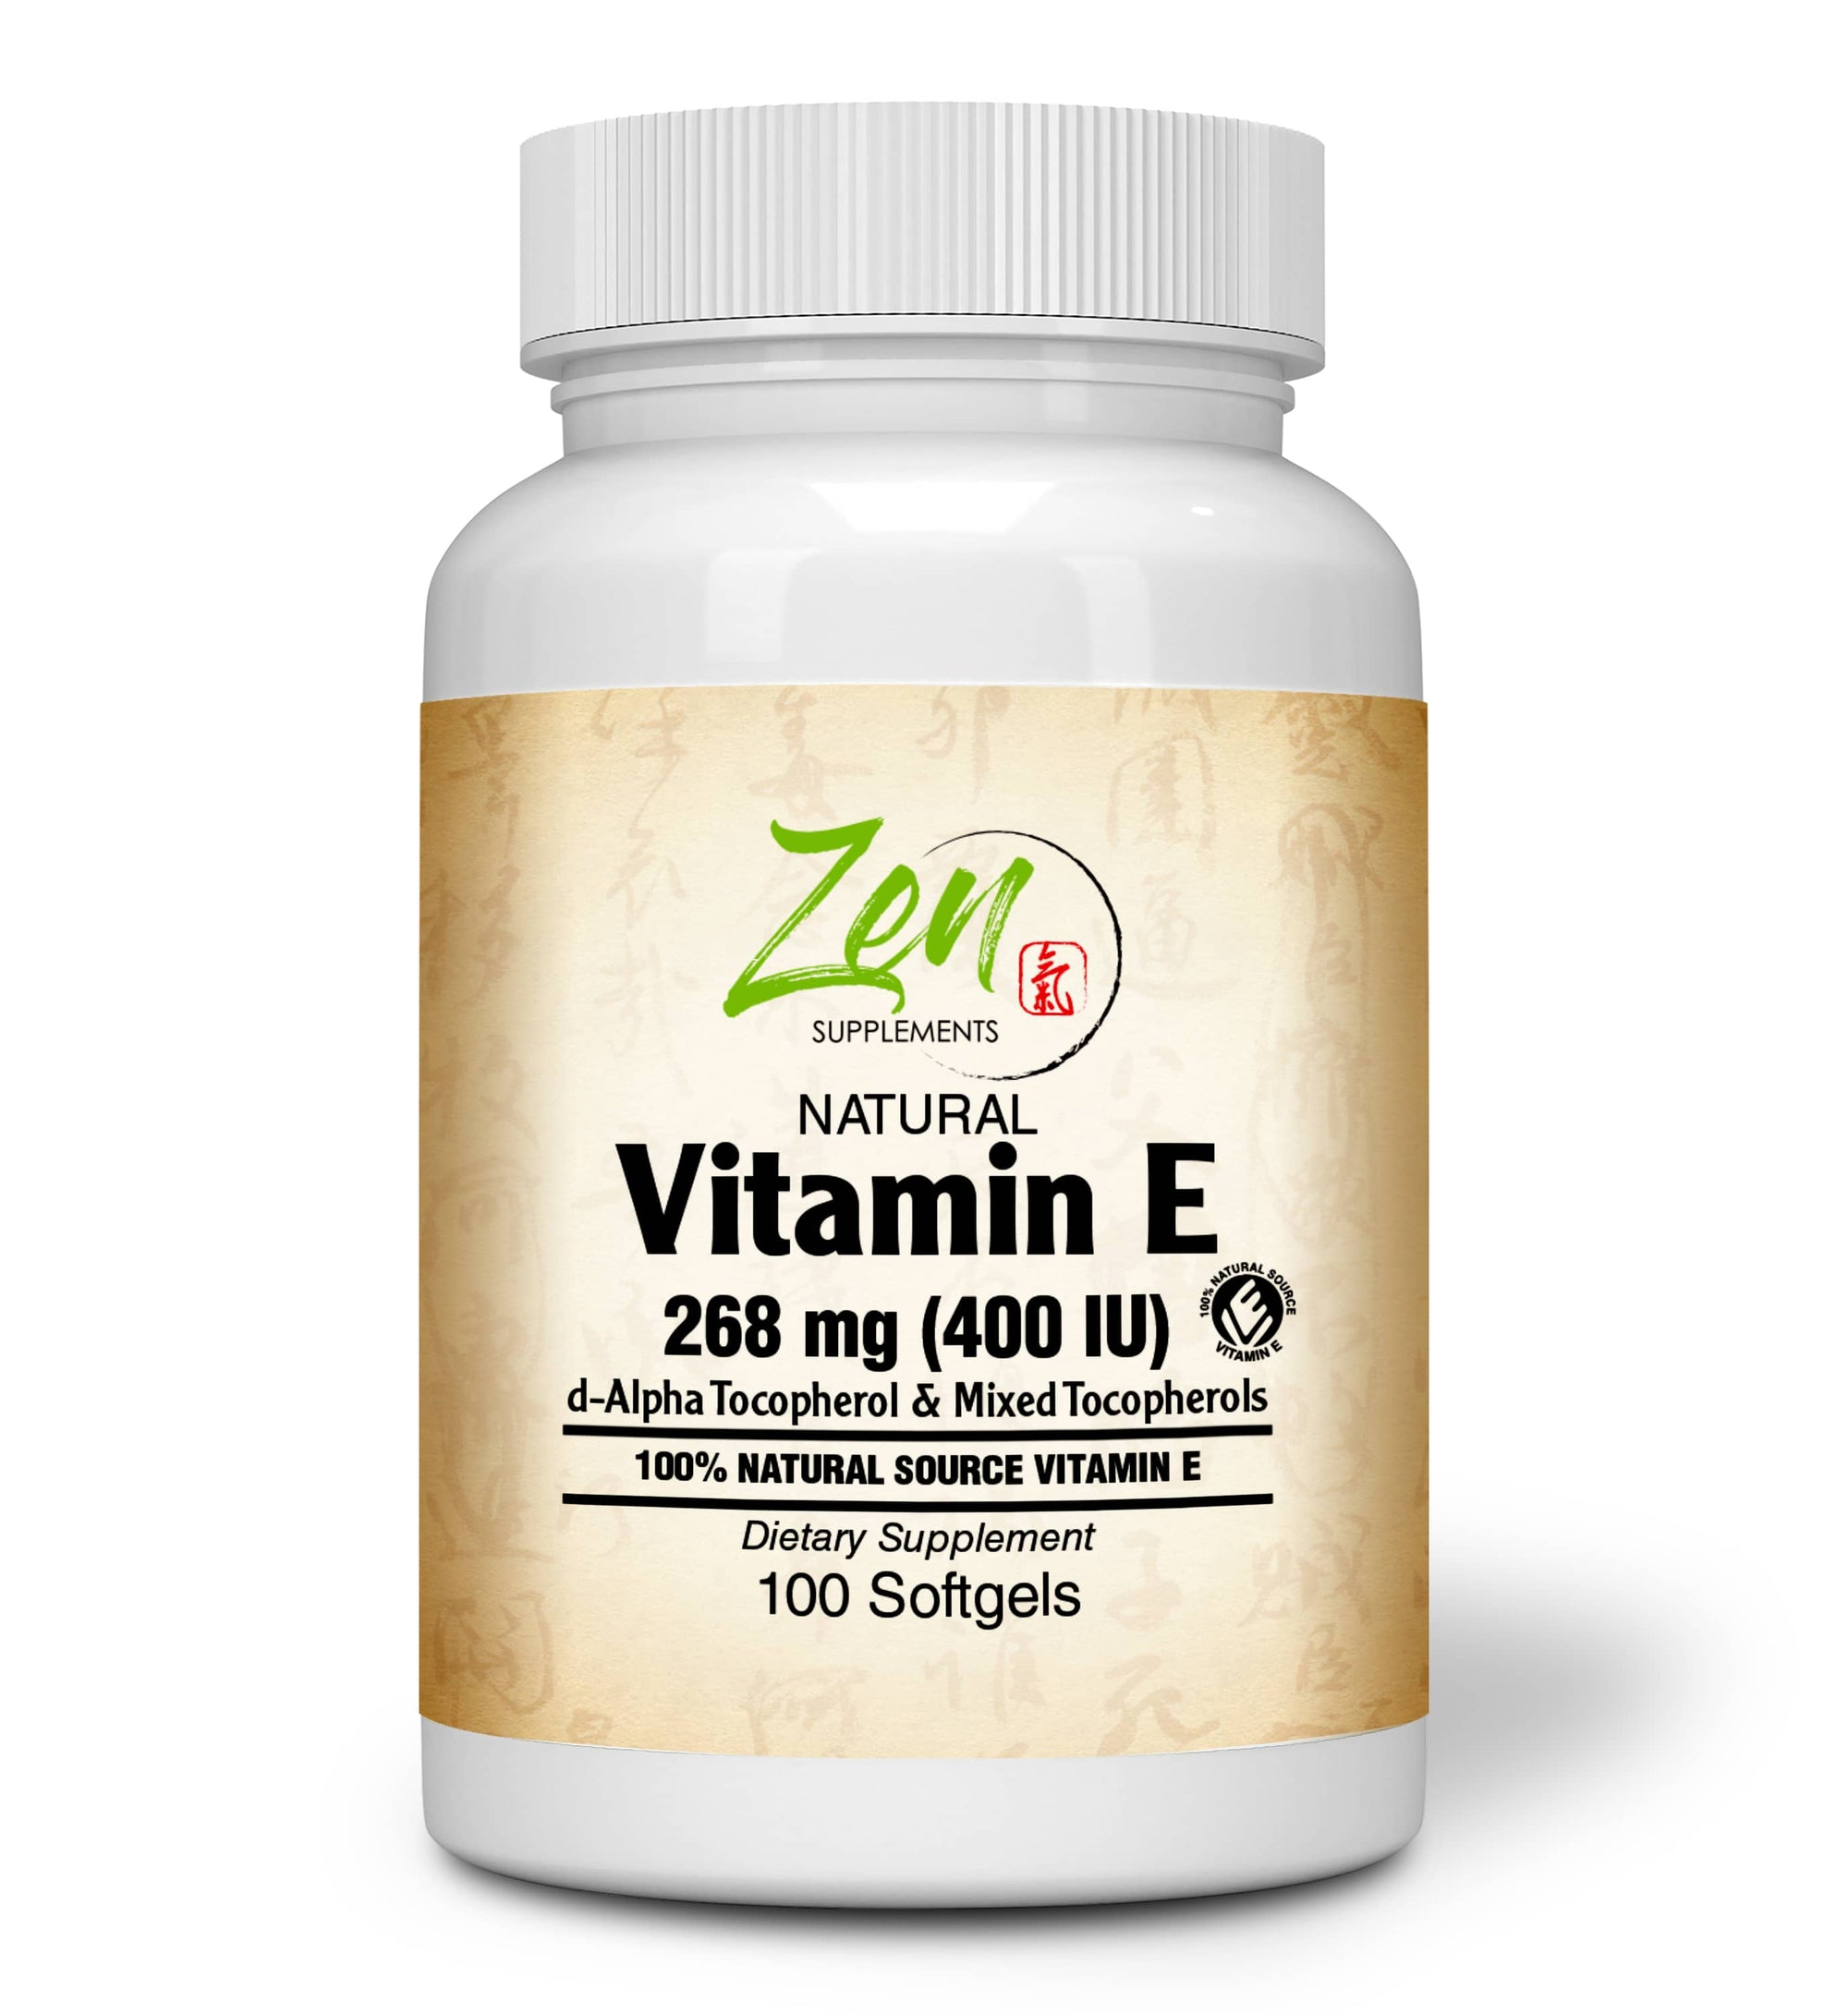 What Does Vitamin E Supplements Help With?